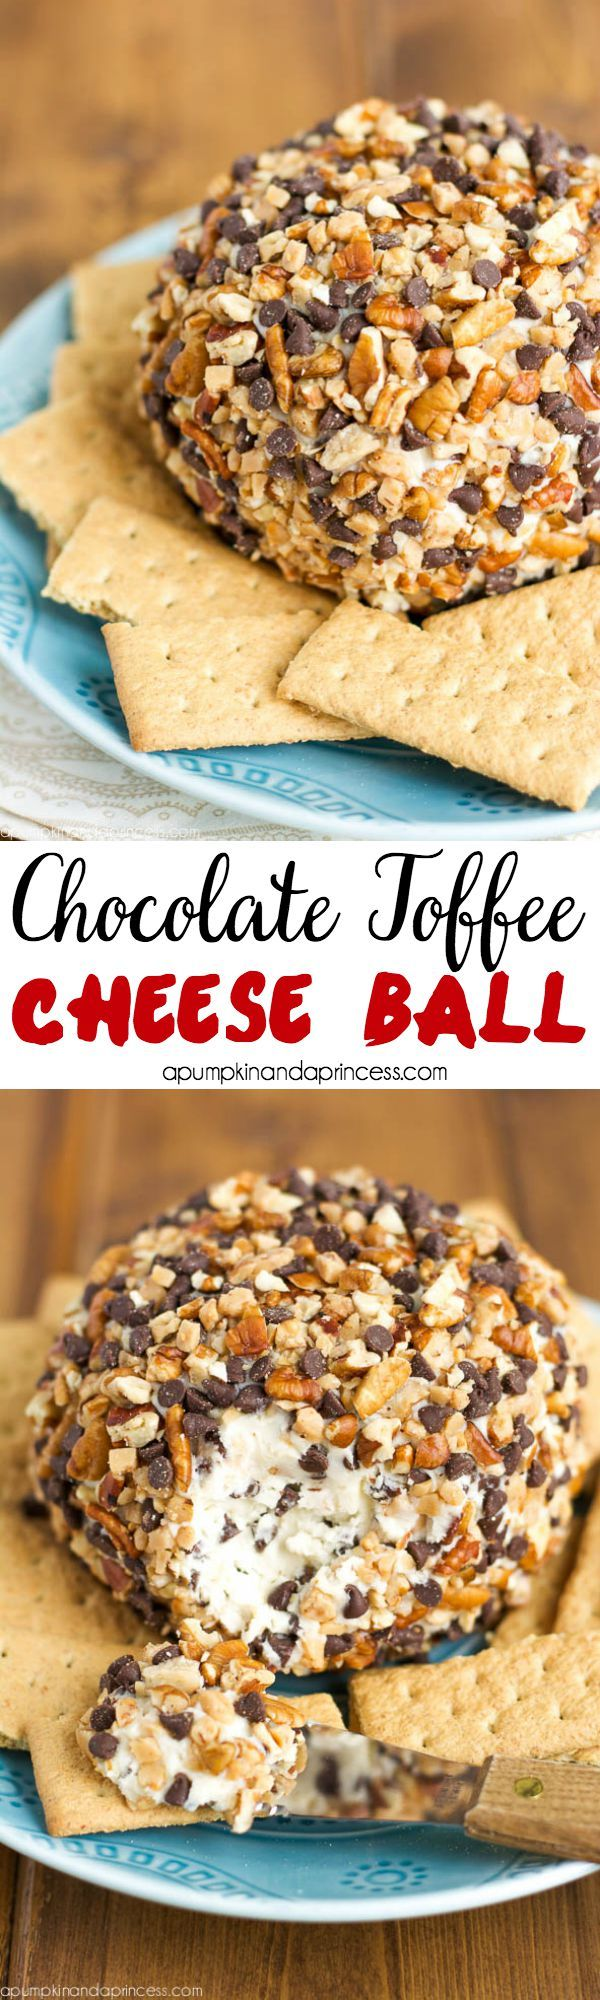 Best 25+ Dessert cheese ball ideas on Pinterest | Peanut butter ...